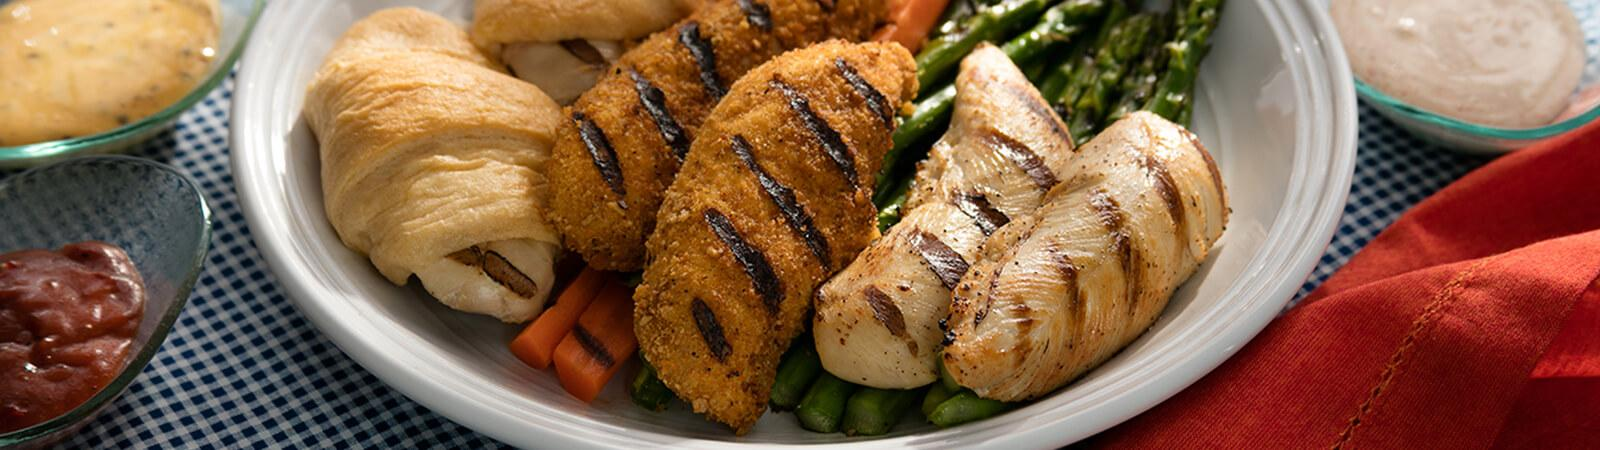 Grilled Chicken Tender Dippers